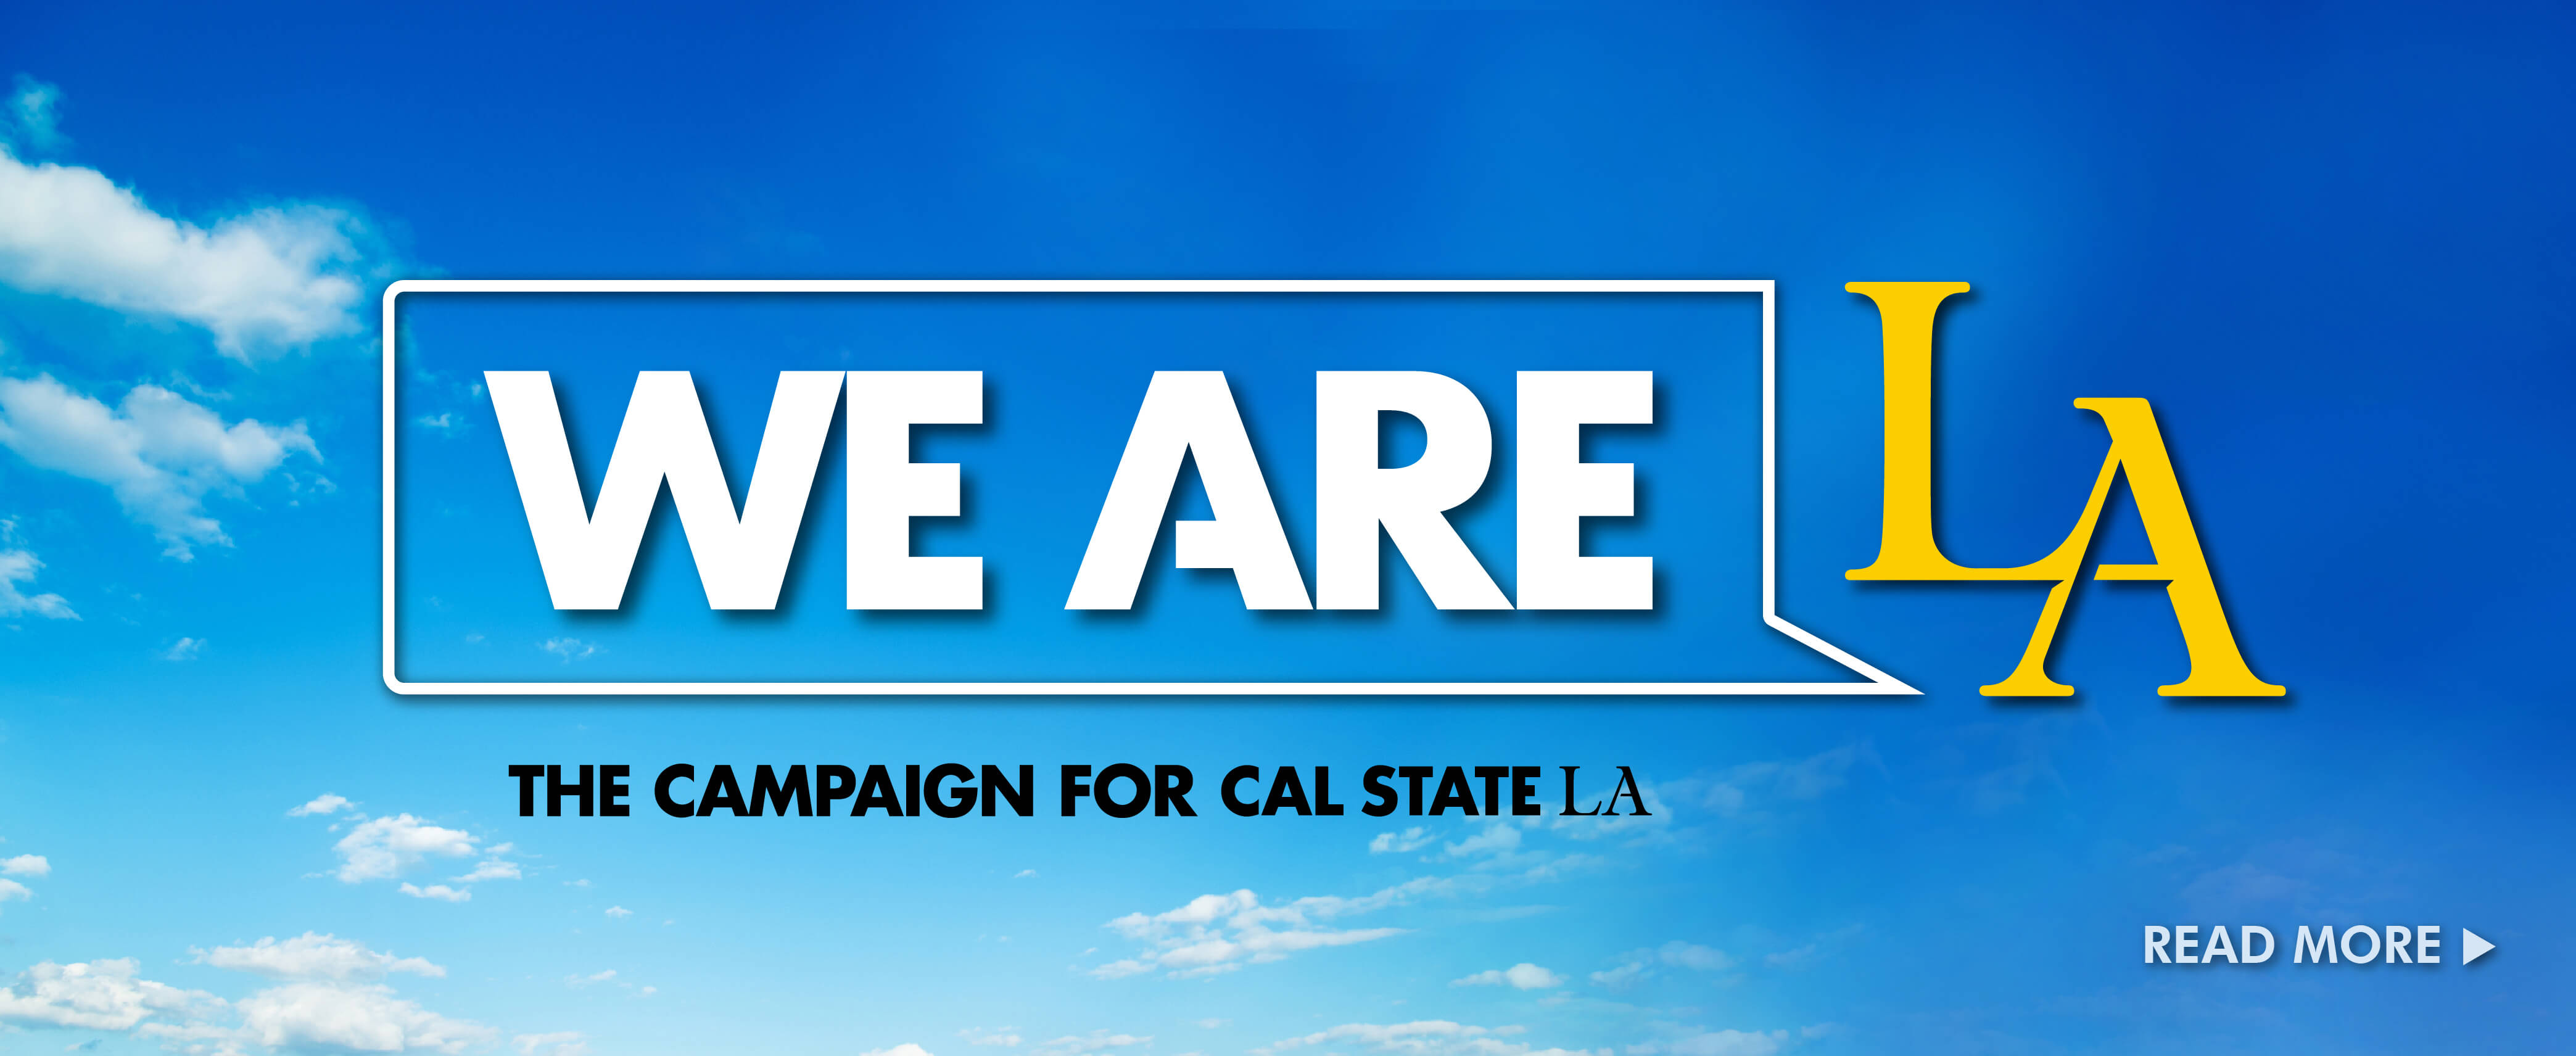 We Are LA Cal State LA Fundraising Campaign